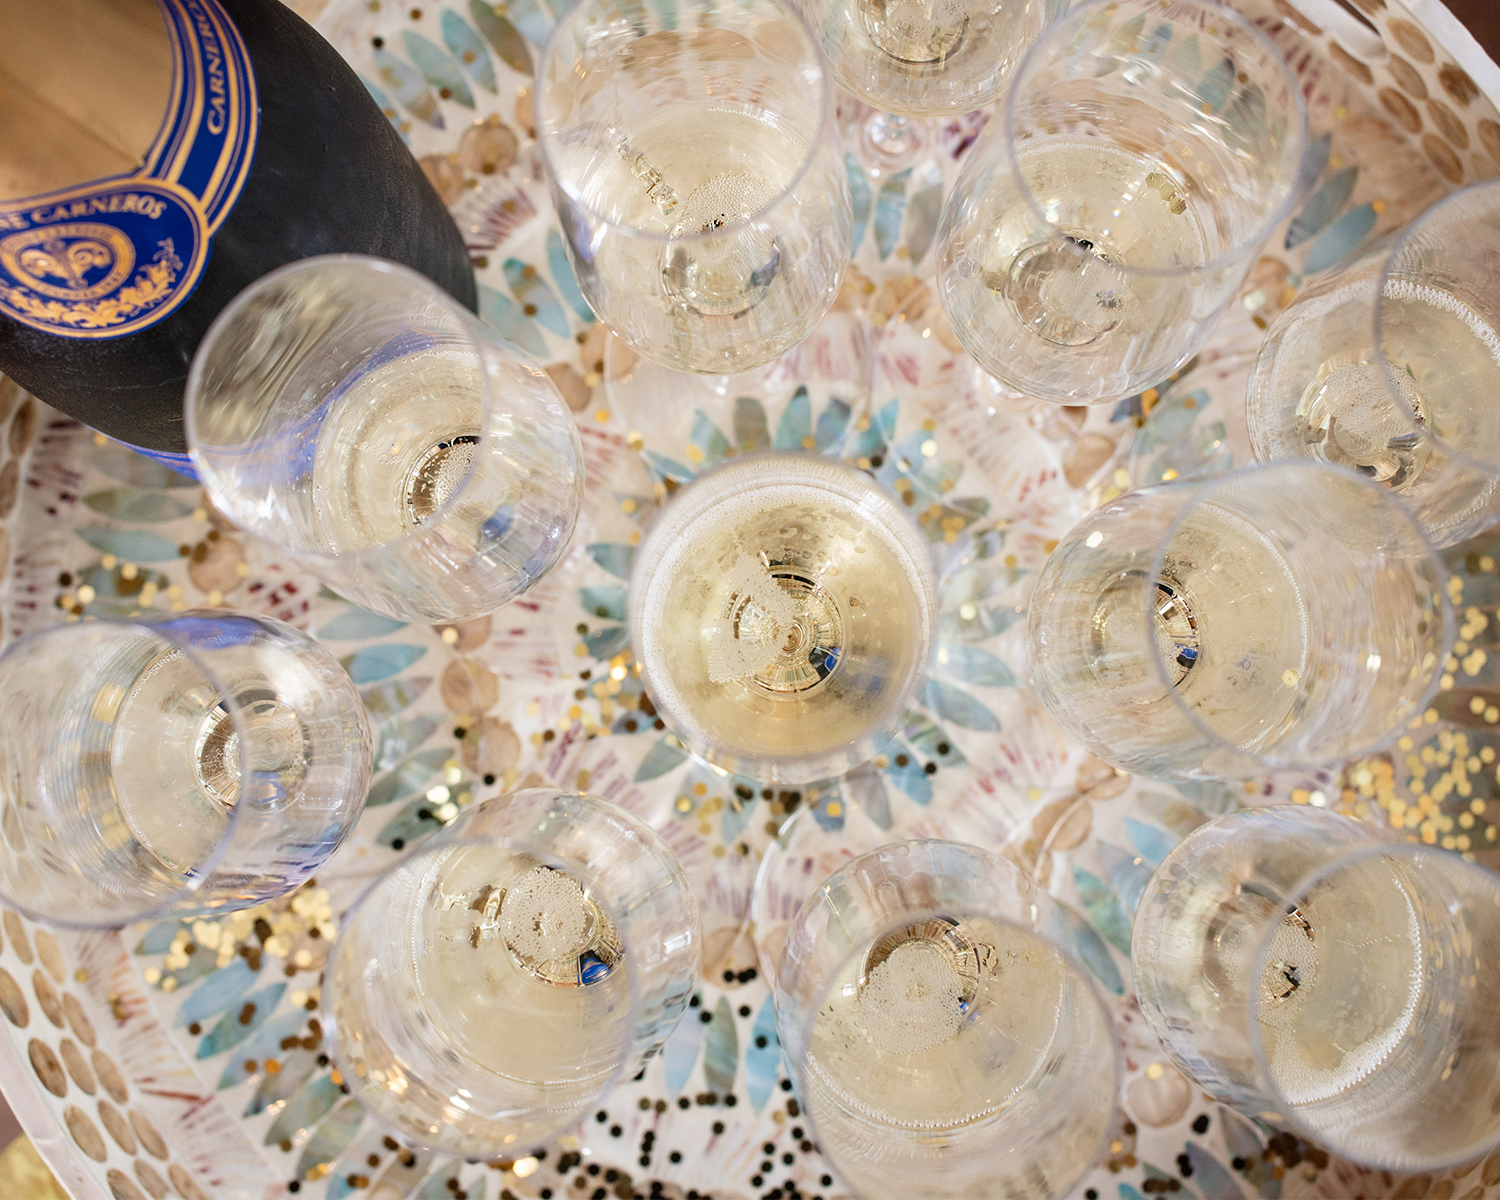 Tray of several glasses of bubbles with gold glitter